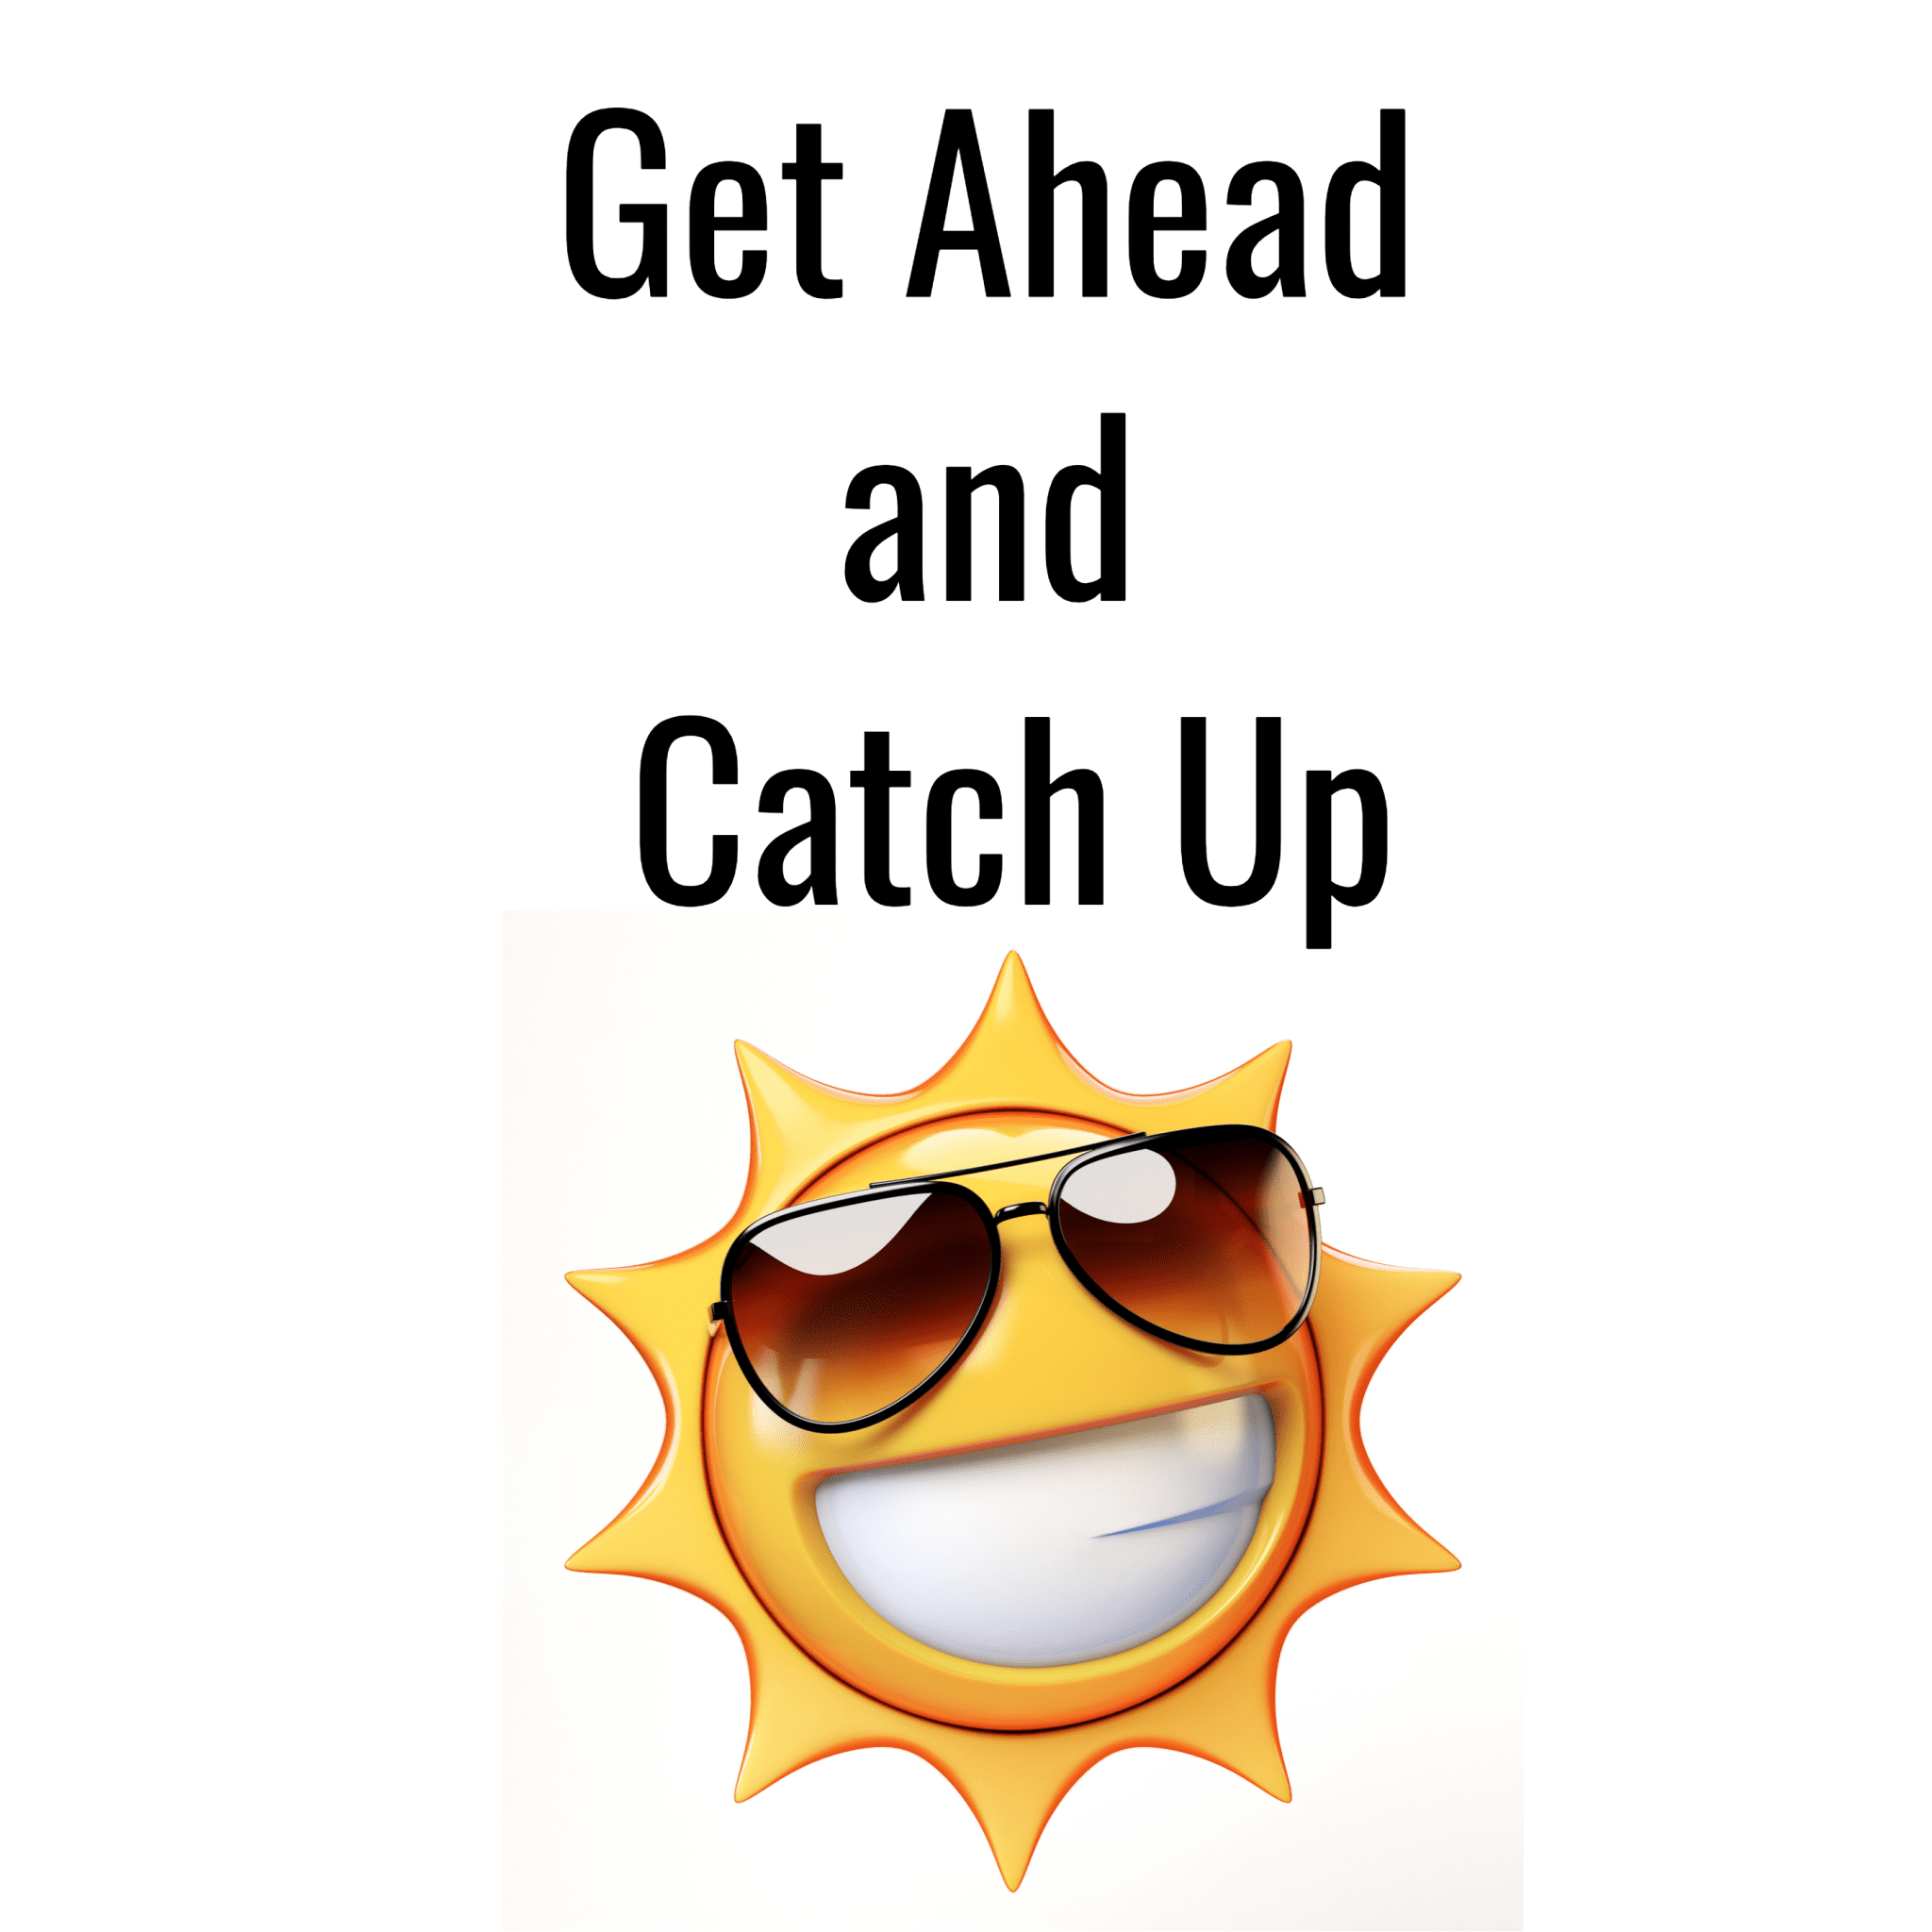 Get Ahead and Catch Up 12-19 éveseknek